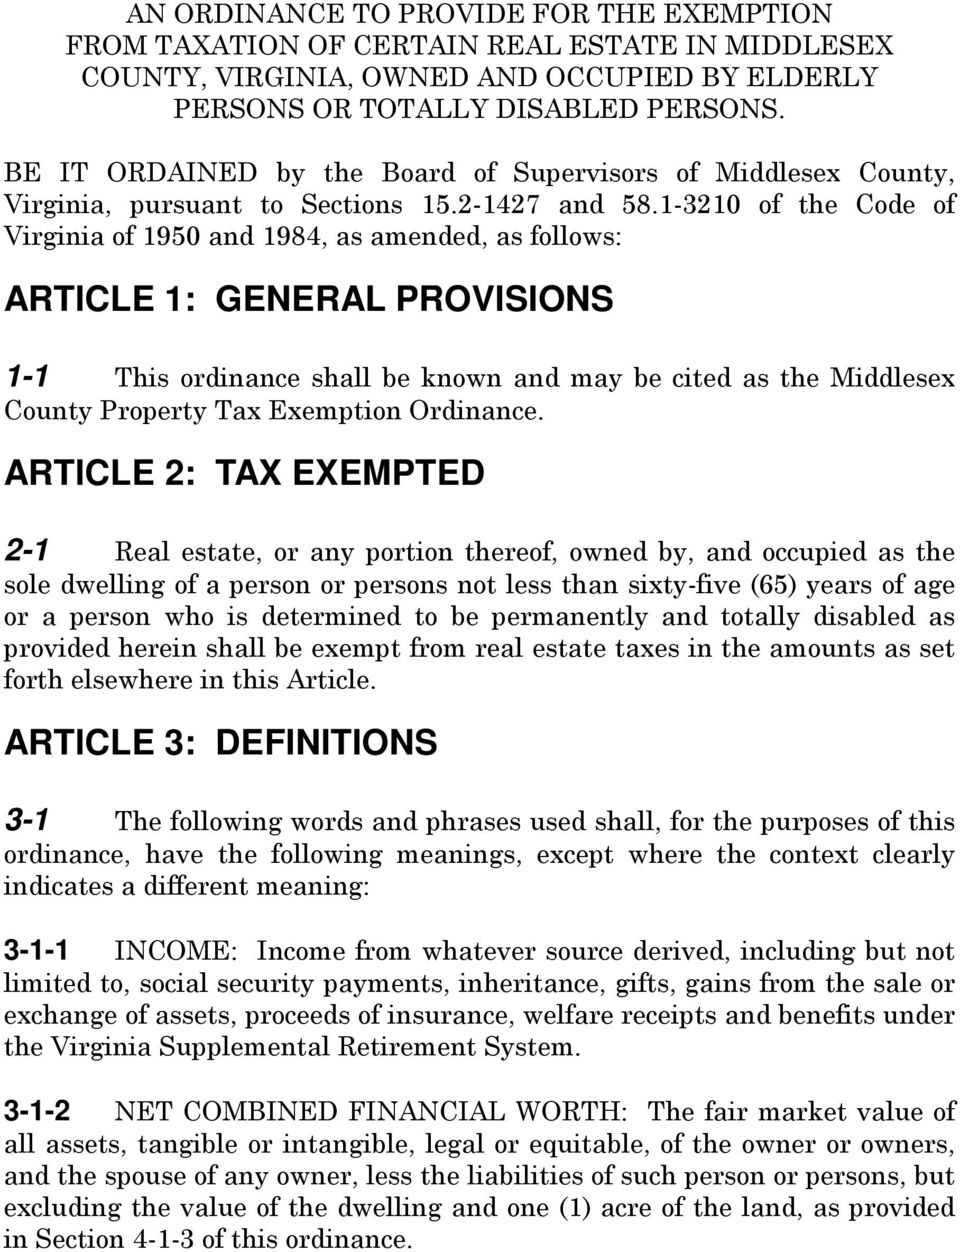 1-3210 of the Code of Virginia of 1950 and 1984, as amended, as follows: ARTICLE 1: GENERAL PROVISIONS 1-1 This ordinance shall be known and may be cited as the Middlesex County Property Tax